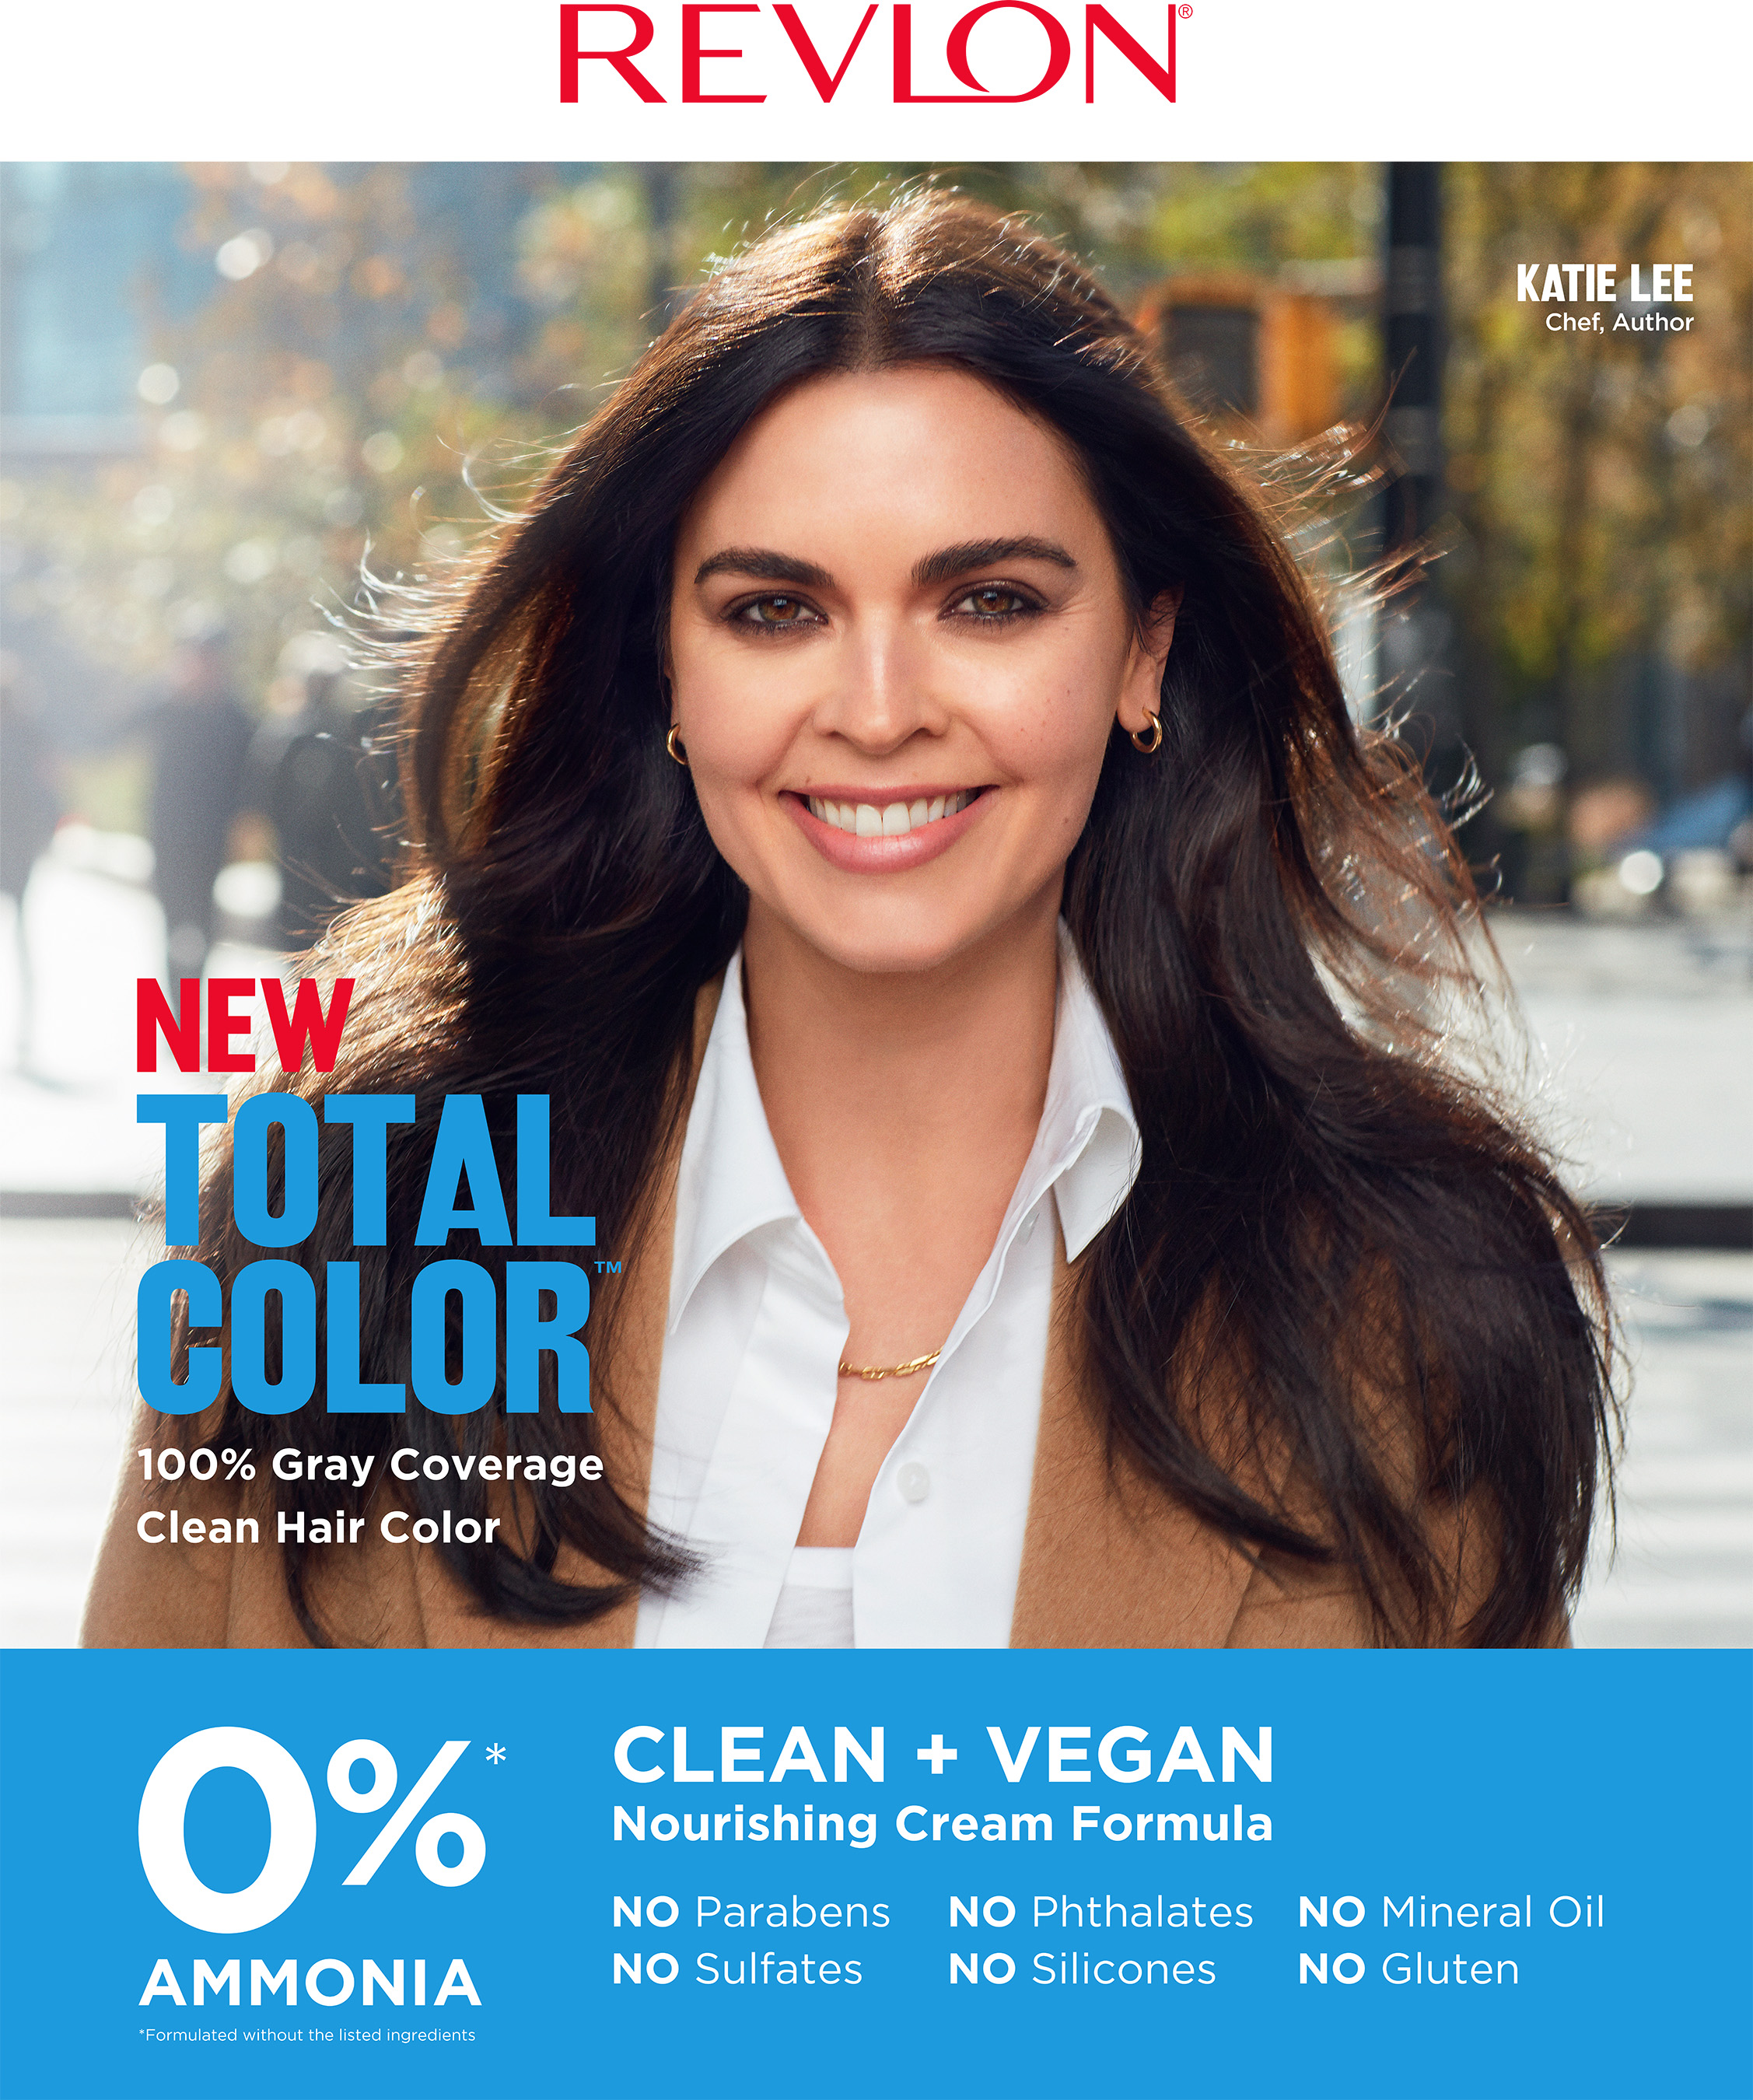 Emmy-nominated TV chef, Katie Lee is Revlon's Total Color Ambassador.